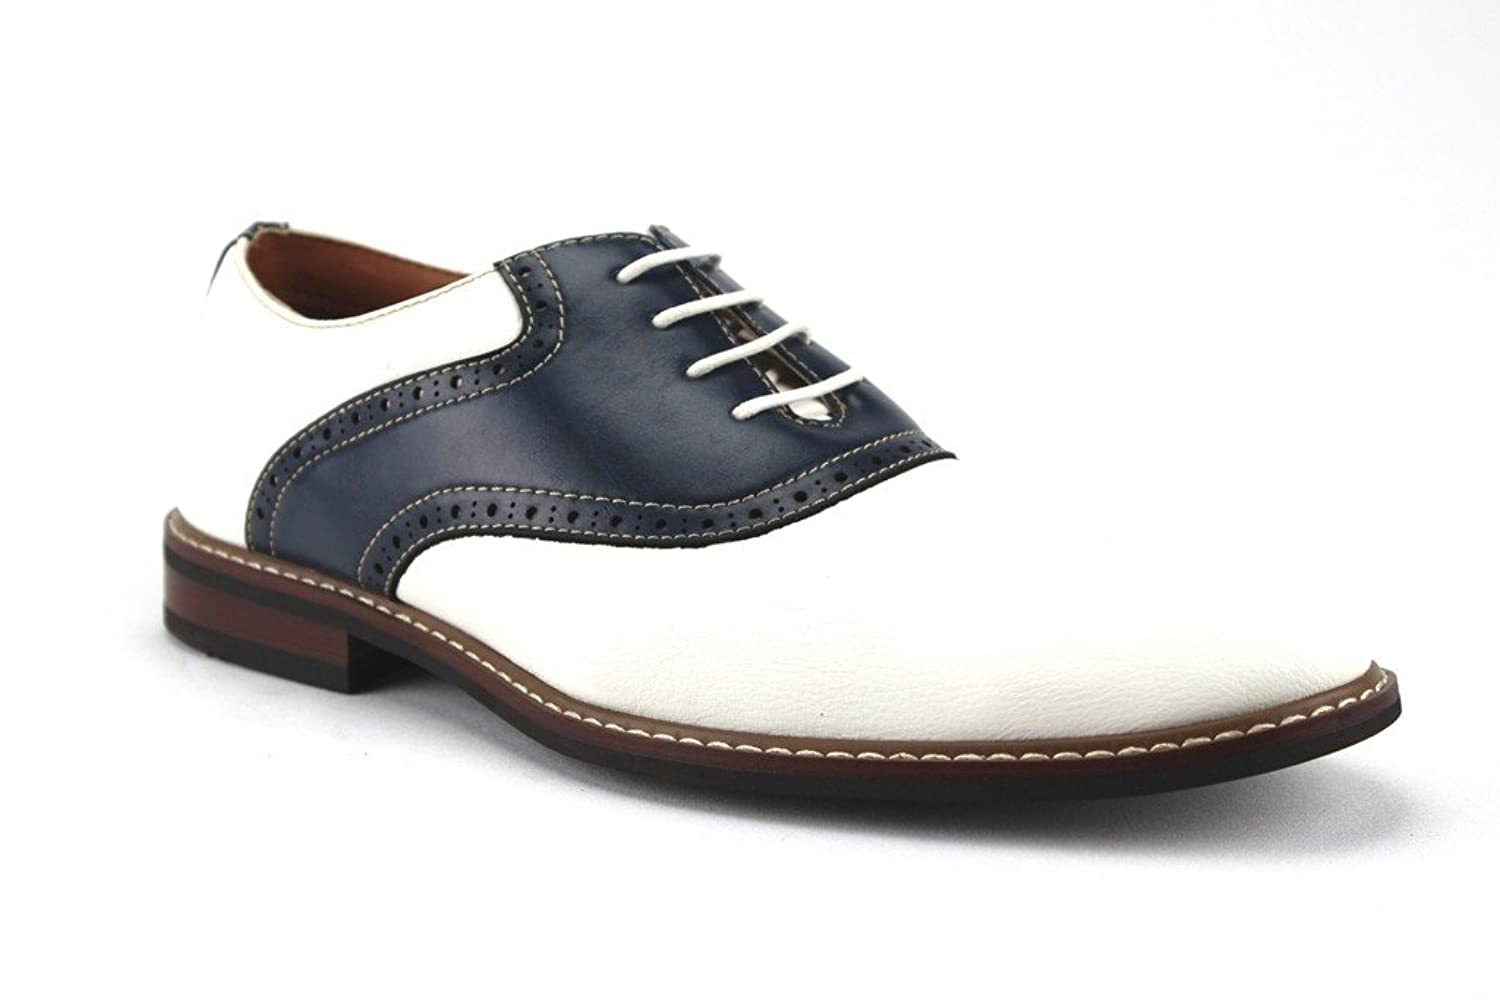 1950s Men's Clothing Ferro Aldo Mens 19268A Two Tone Saddle Lace Up Oxfords Dress Shoes  AT vintagedancer.com